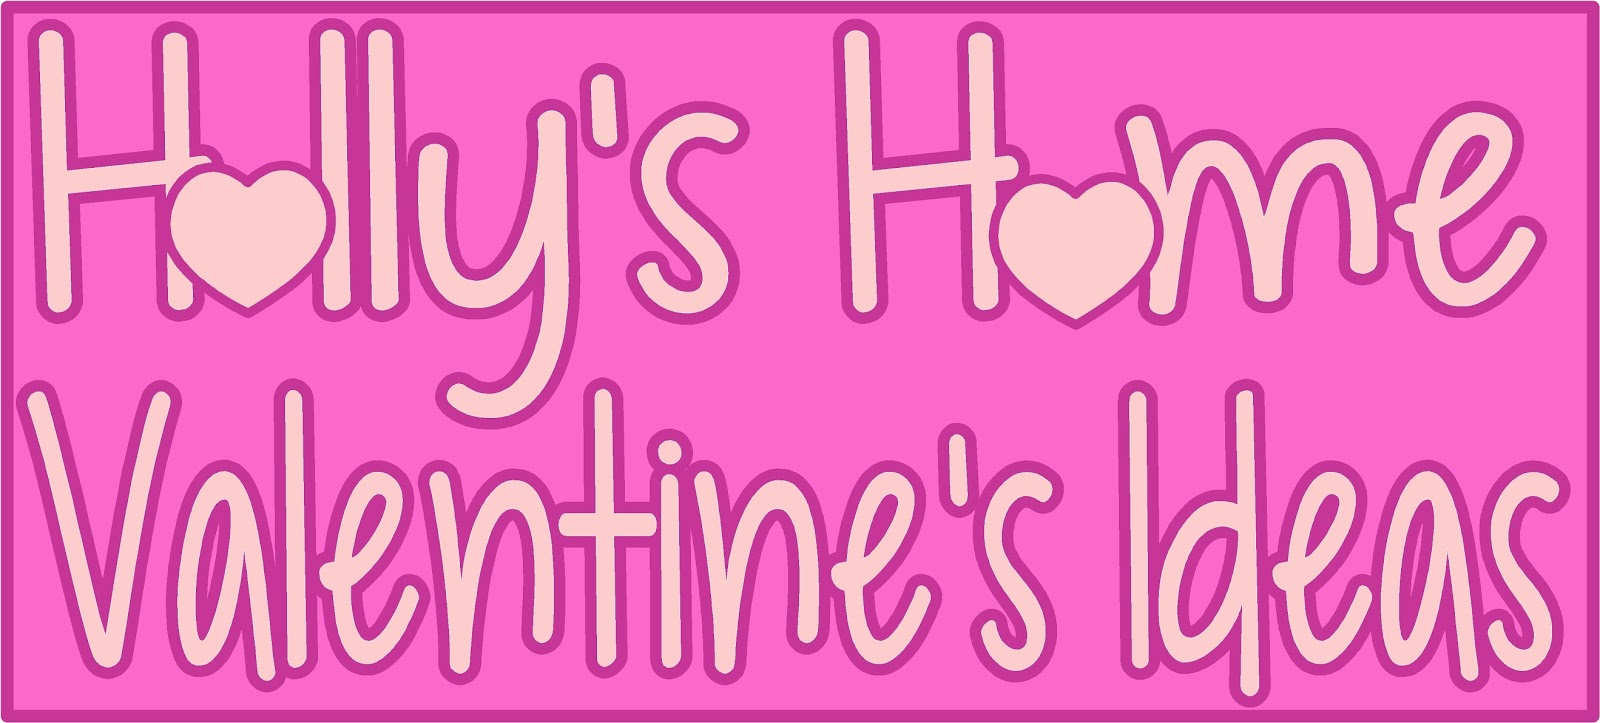 http://hollyshome-hollyshome.blogspot.com/p/fun-and-free-valentines-ideas.html